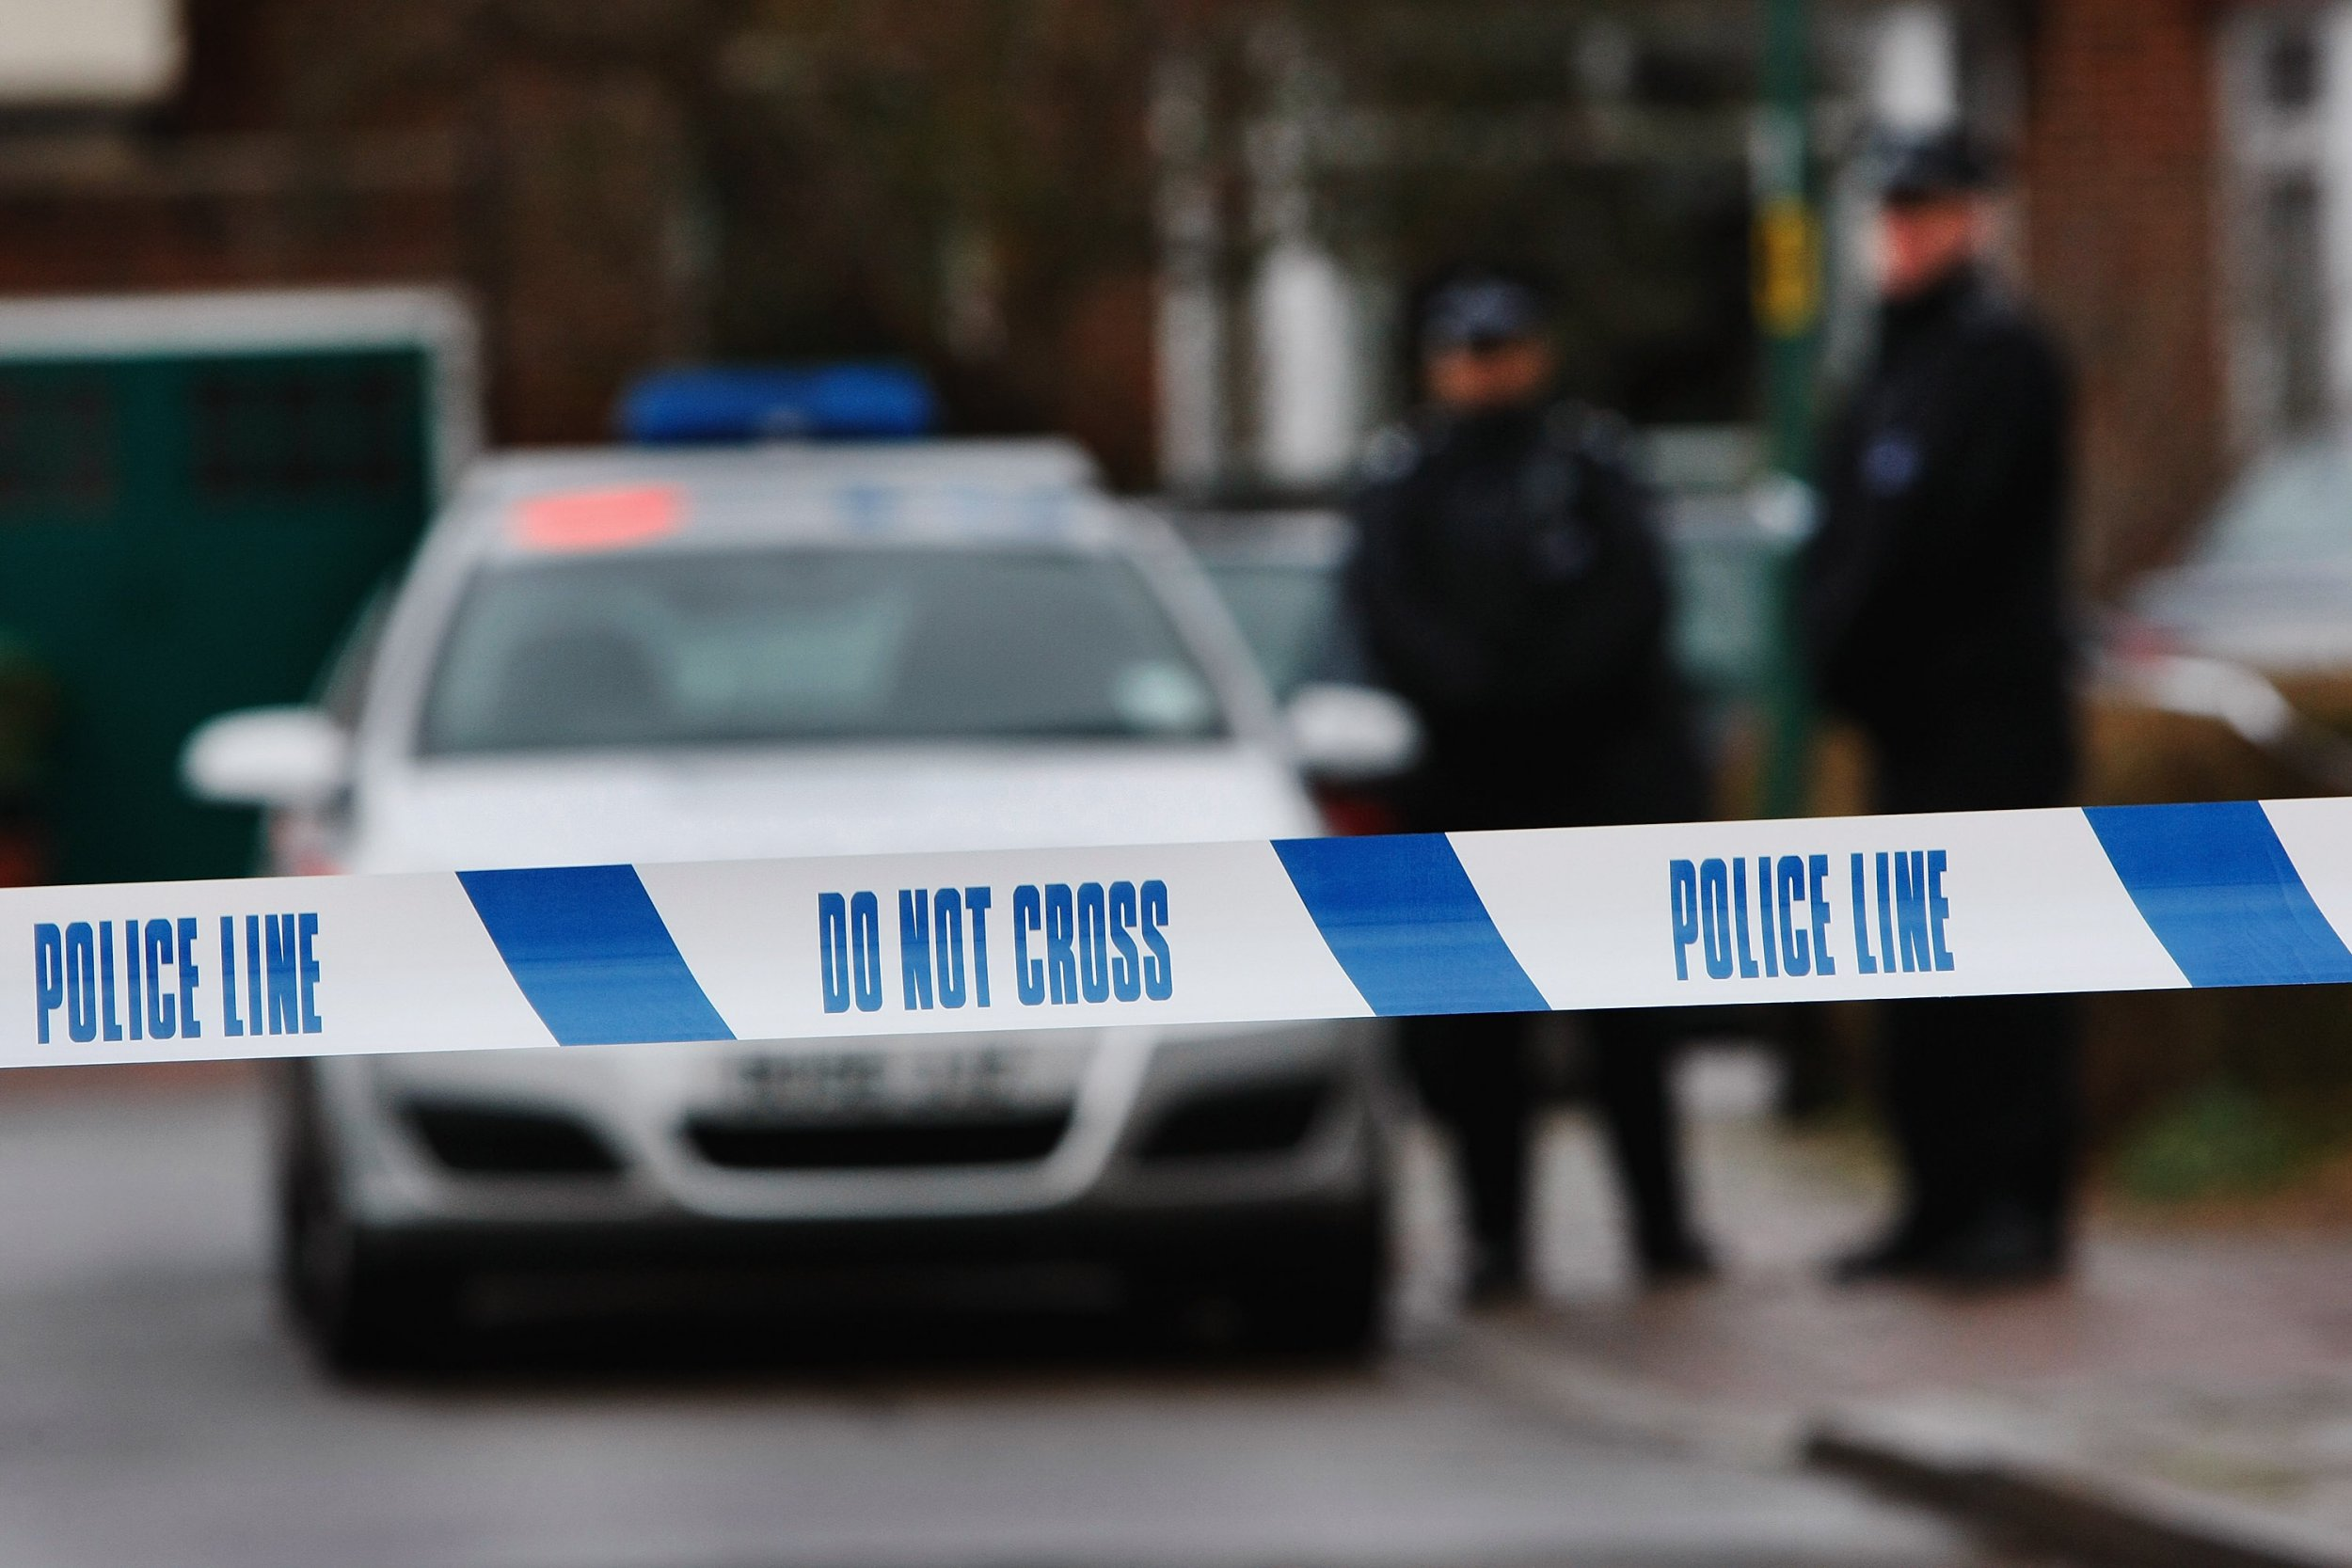 Seven police officers injured after 'being sprayed with ammonia'